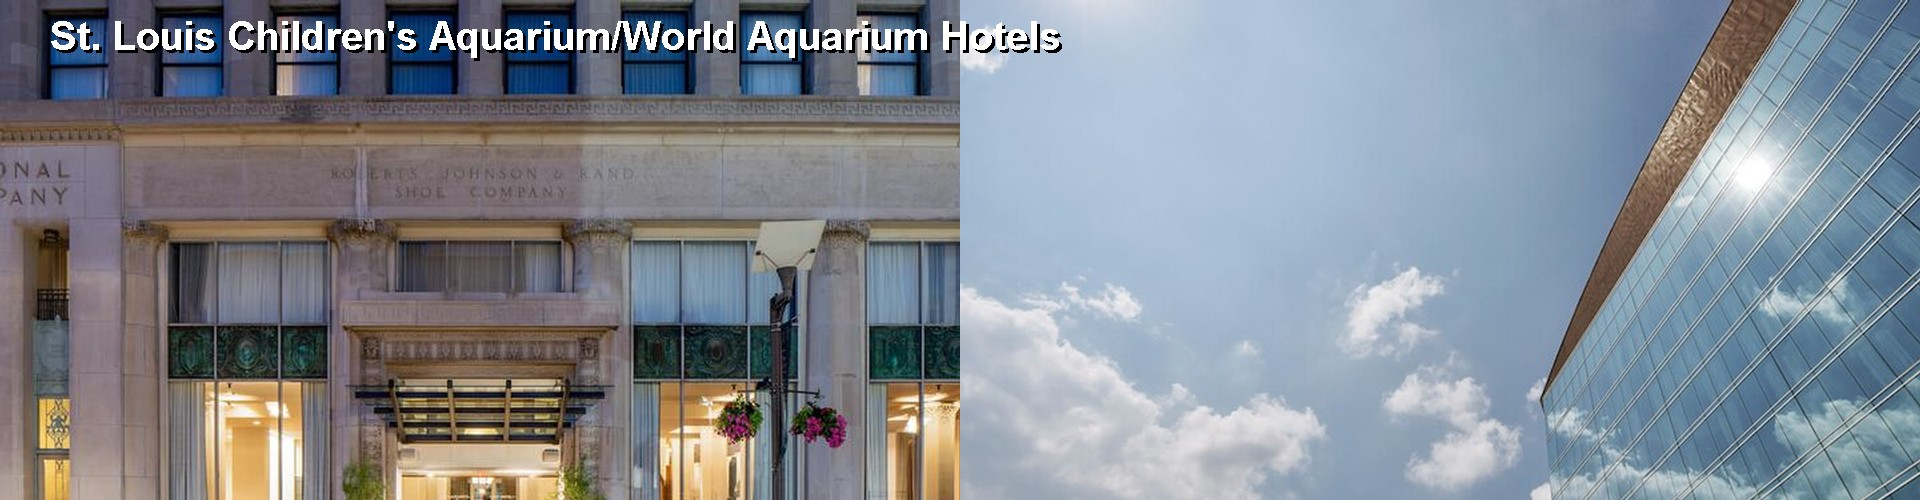 5 Best Hotels near St. Louis Children's Aquarium/World Aquarium